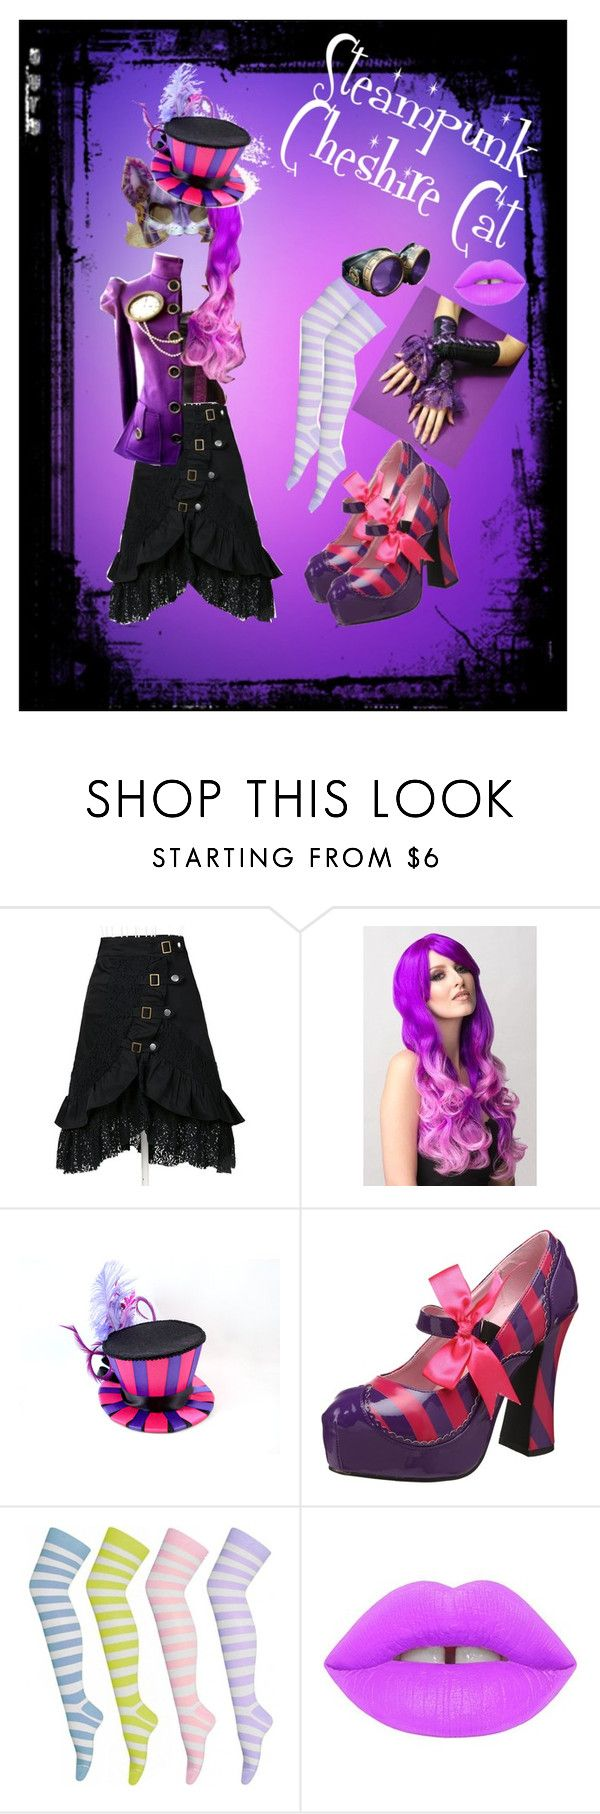 steampunk cheshire cat by scarlet0alpha on polyvore featuring funtasma and lime crime halloween 2017halloween ideashalloween costumescheshire - Cat Costume Ideas Halloween